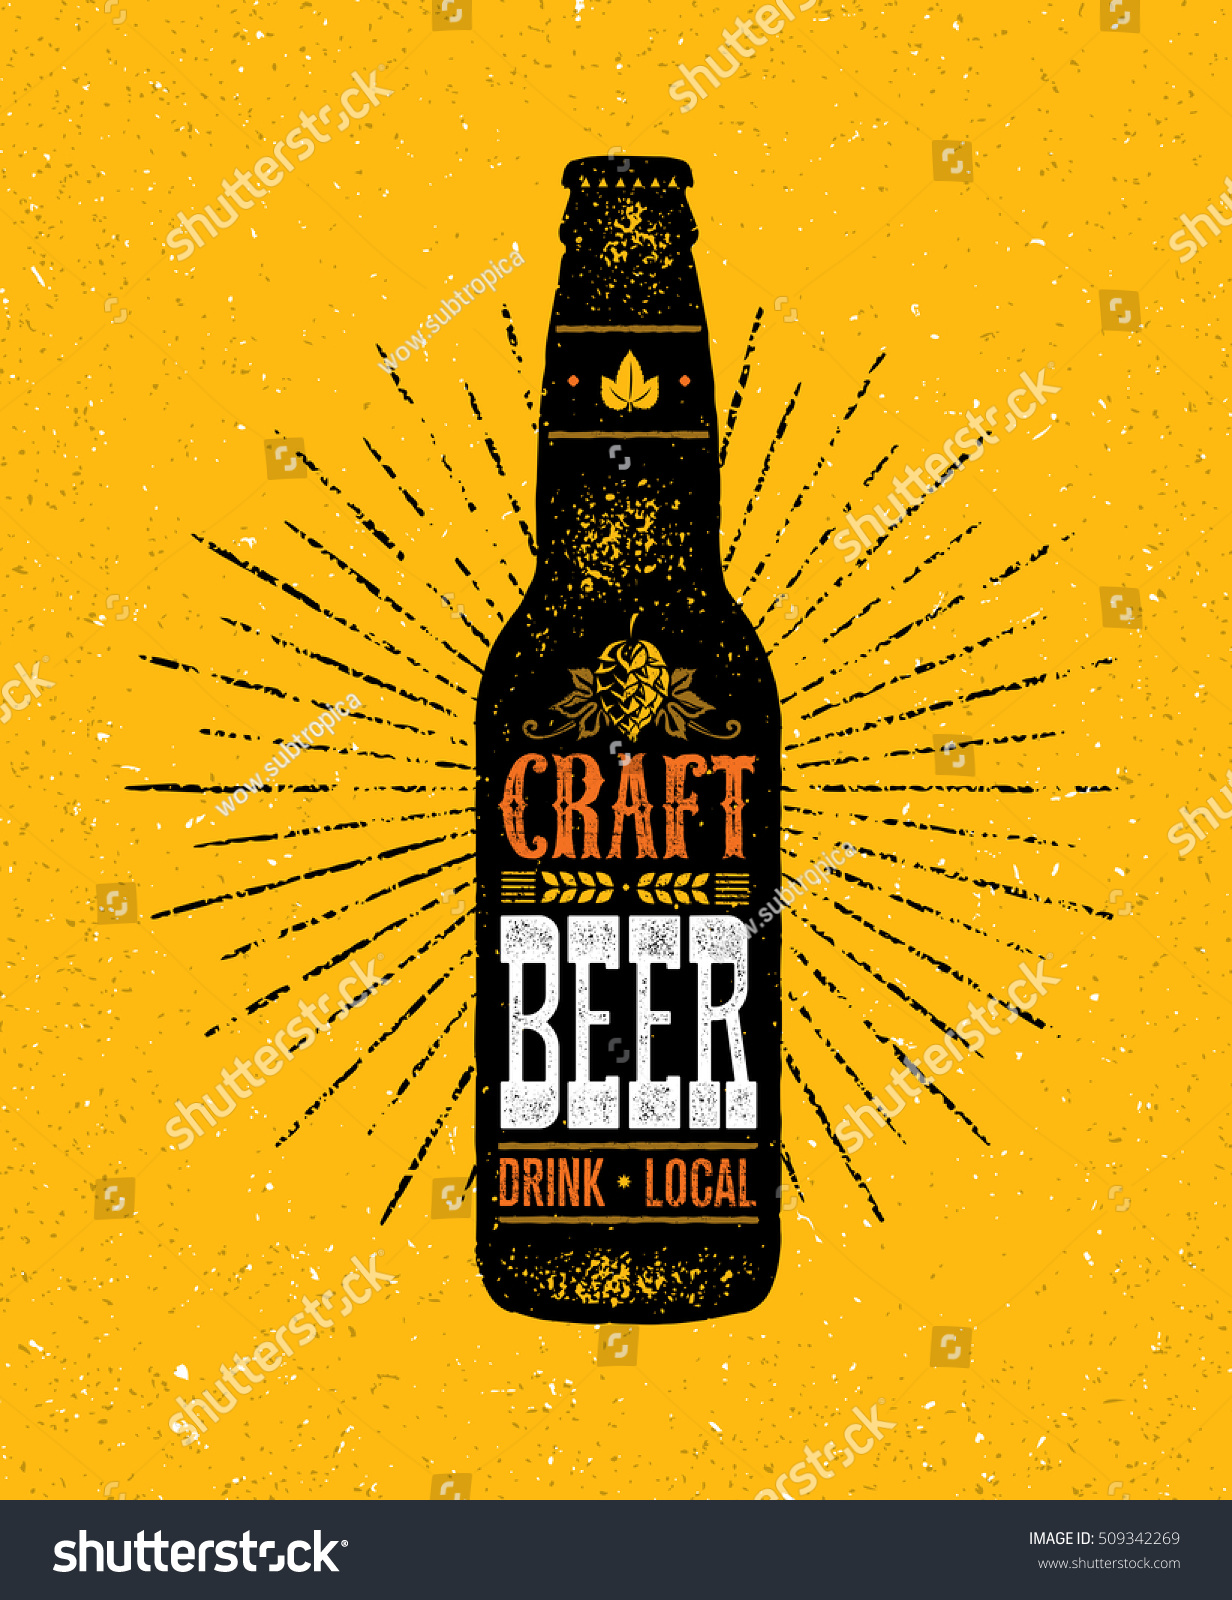 Local Craft Beer Creative Handmade Typography Stock Vector Royalty